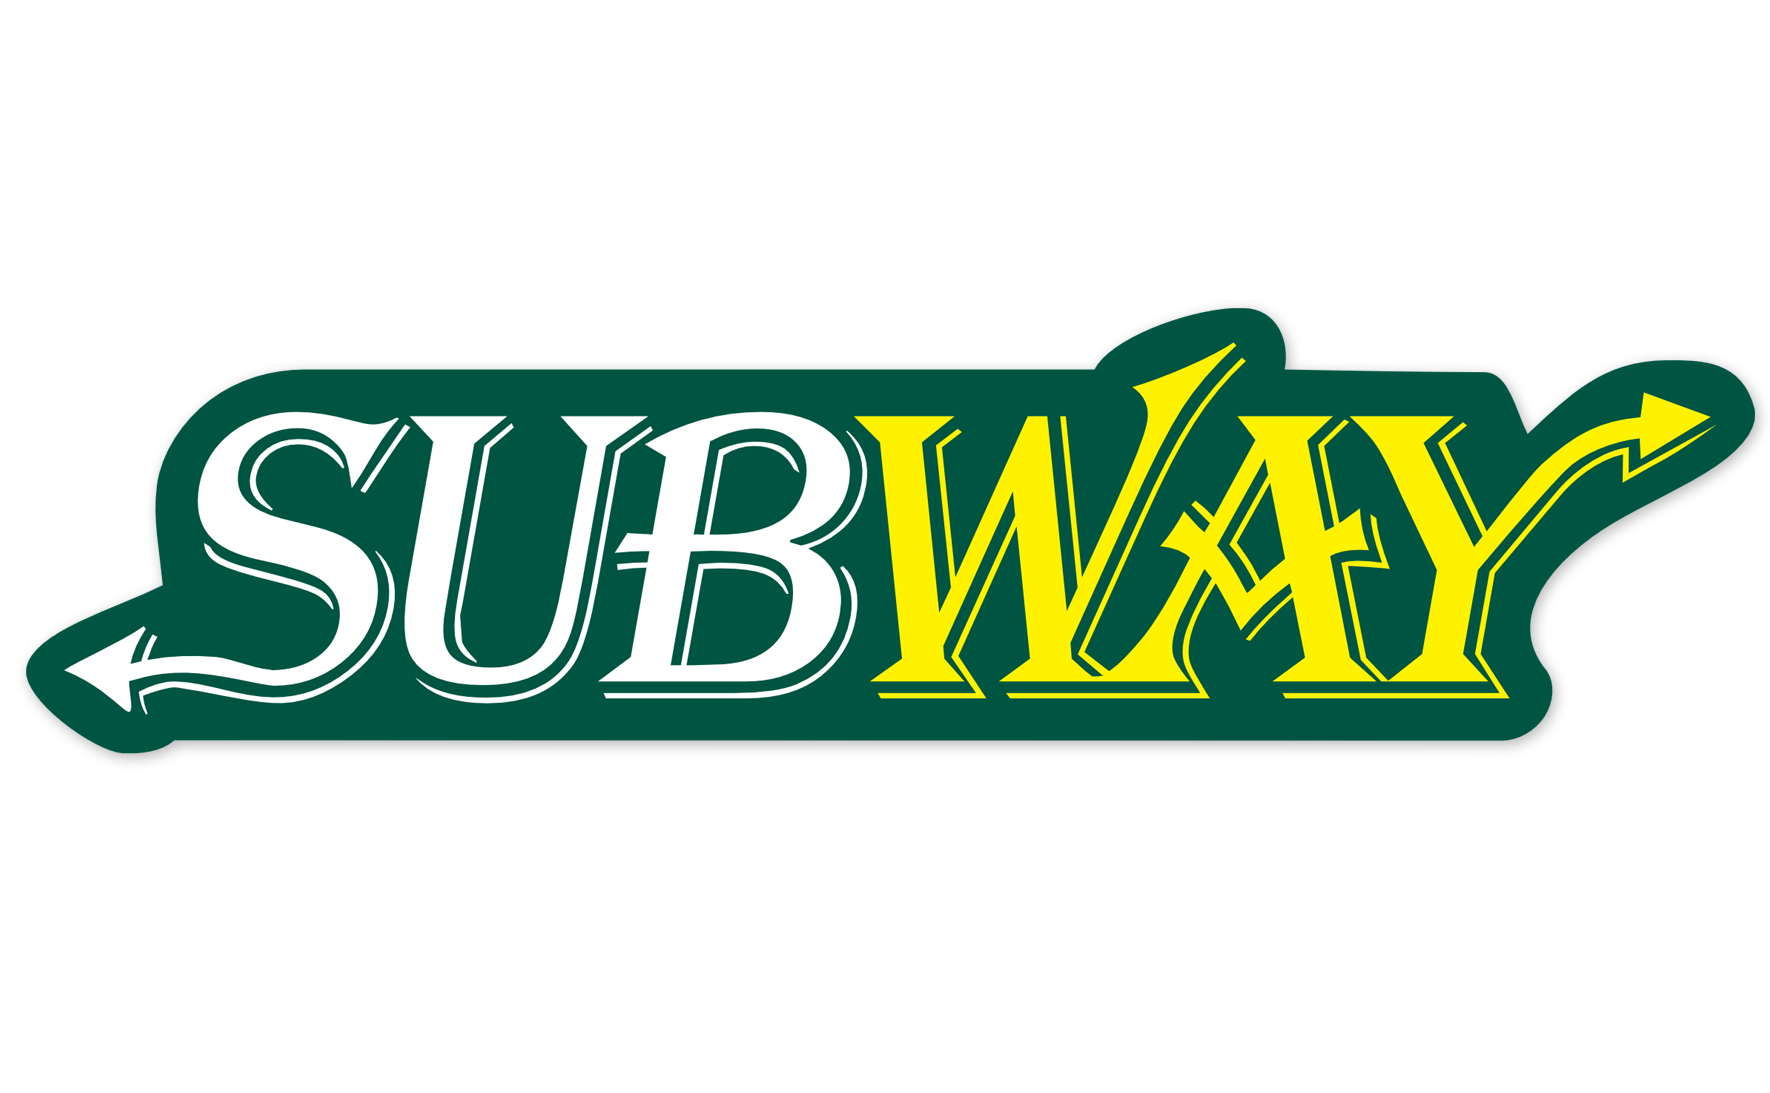 pin subway logo png #4296